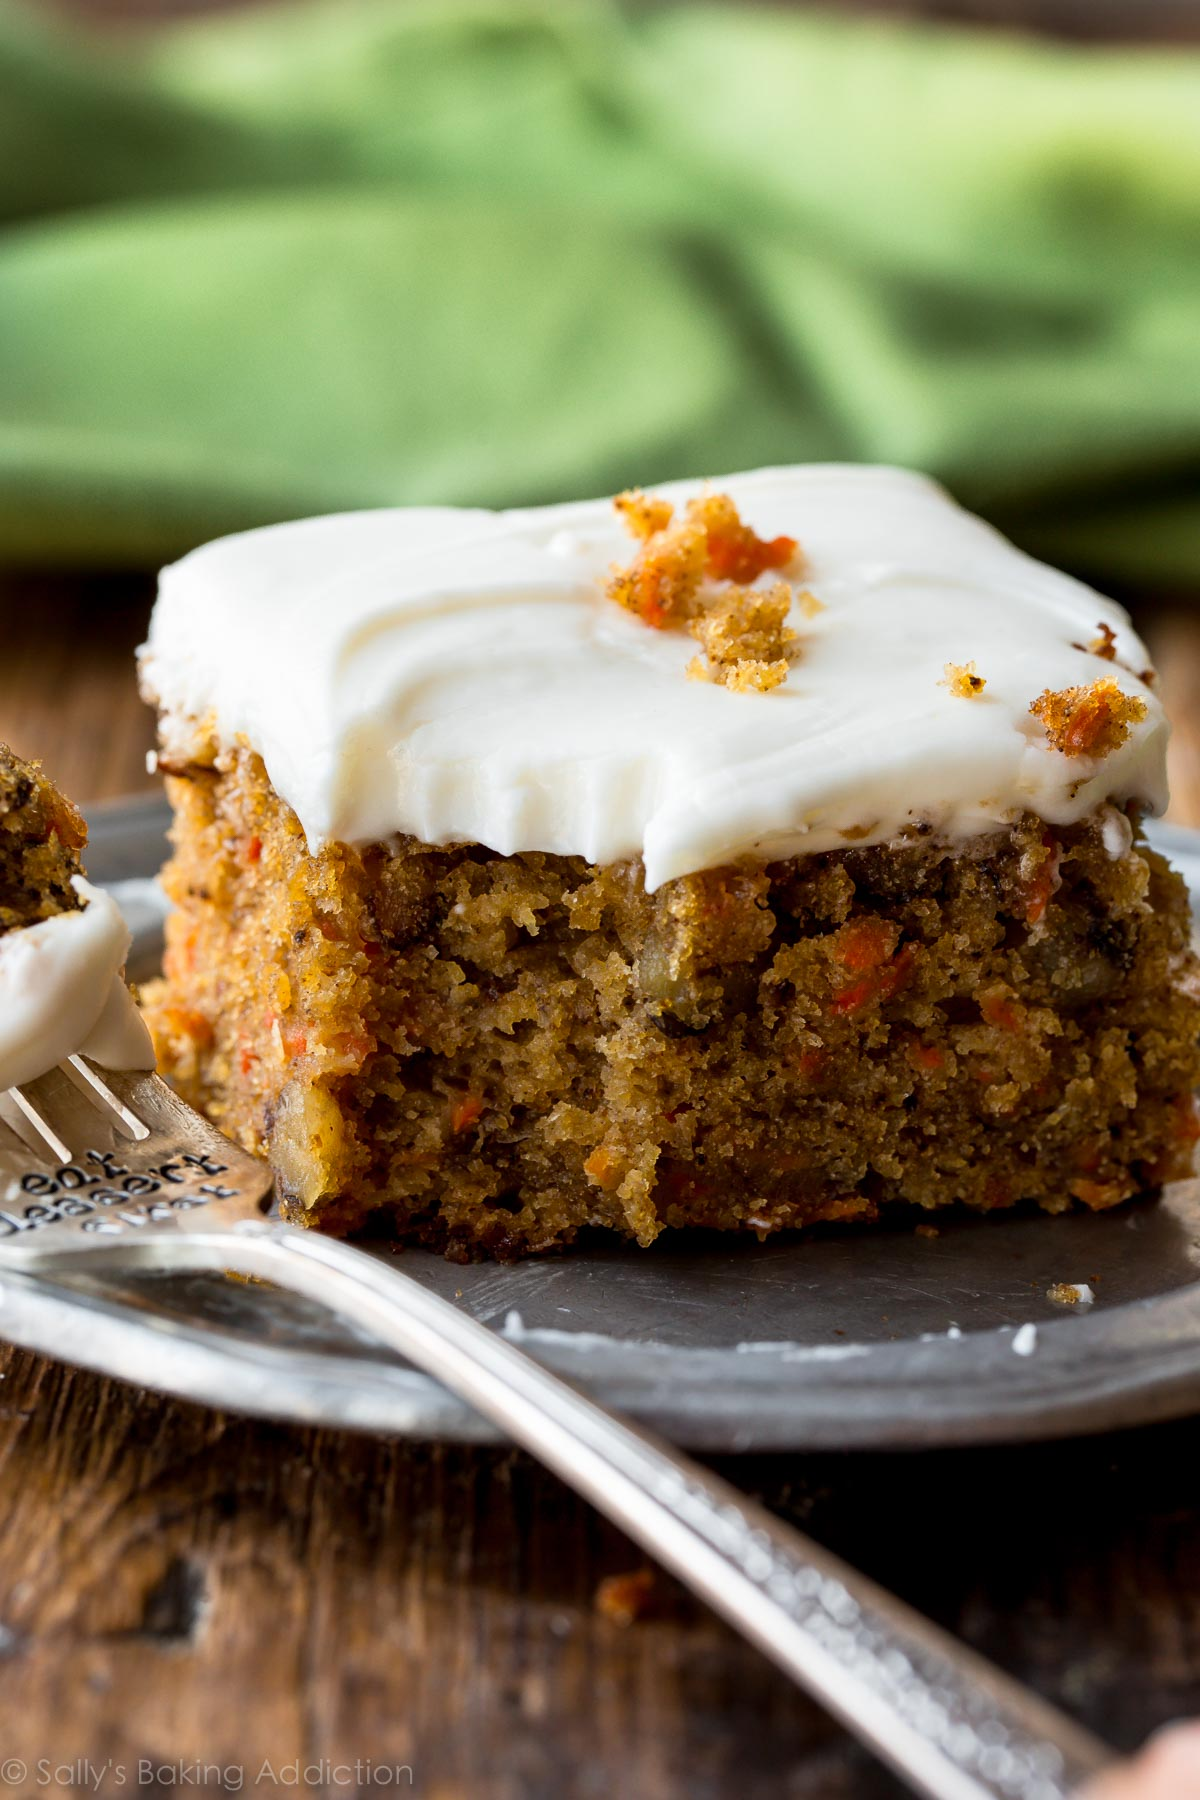 Pineapple Carrot Cake With Cream Cheese Frosting   Sally's Baking Addiction